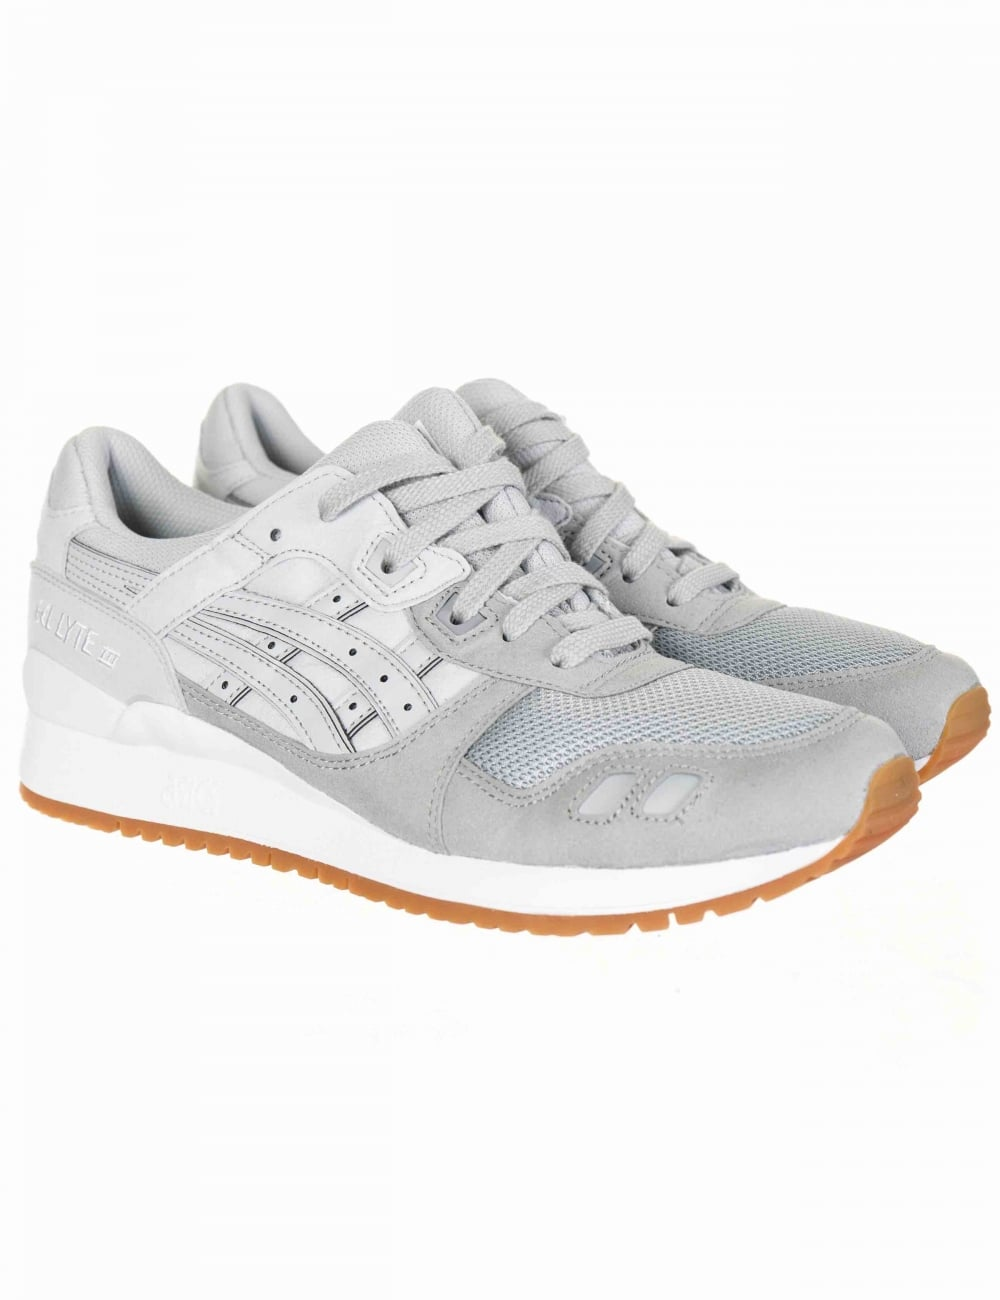 6ccfba1a11cd Asics Gel Lyte III Trainers - Mid Grey Glacier Grey - Footwear from ...